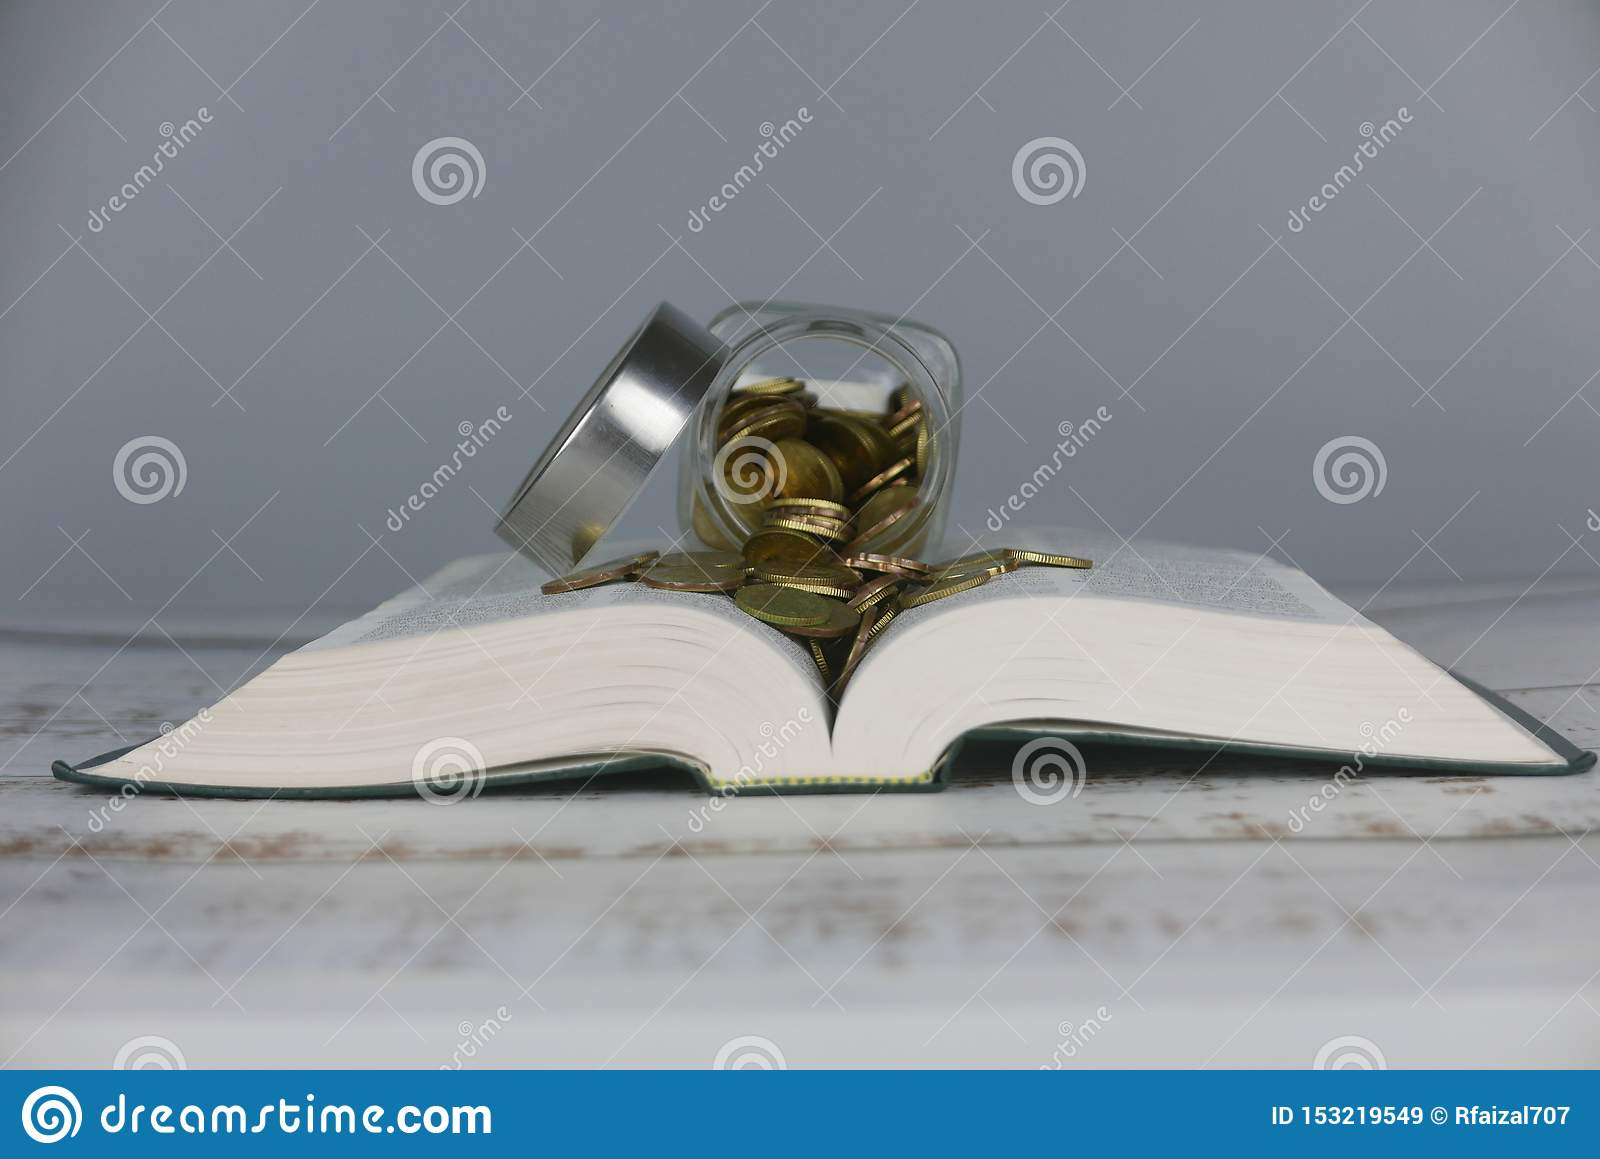 Gold coins on book. Finance and education concept